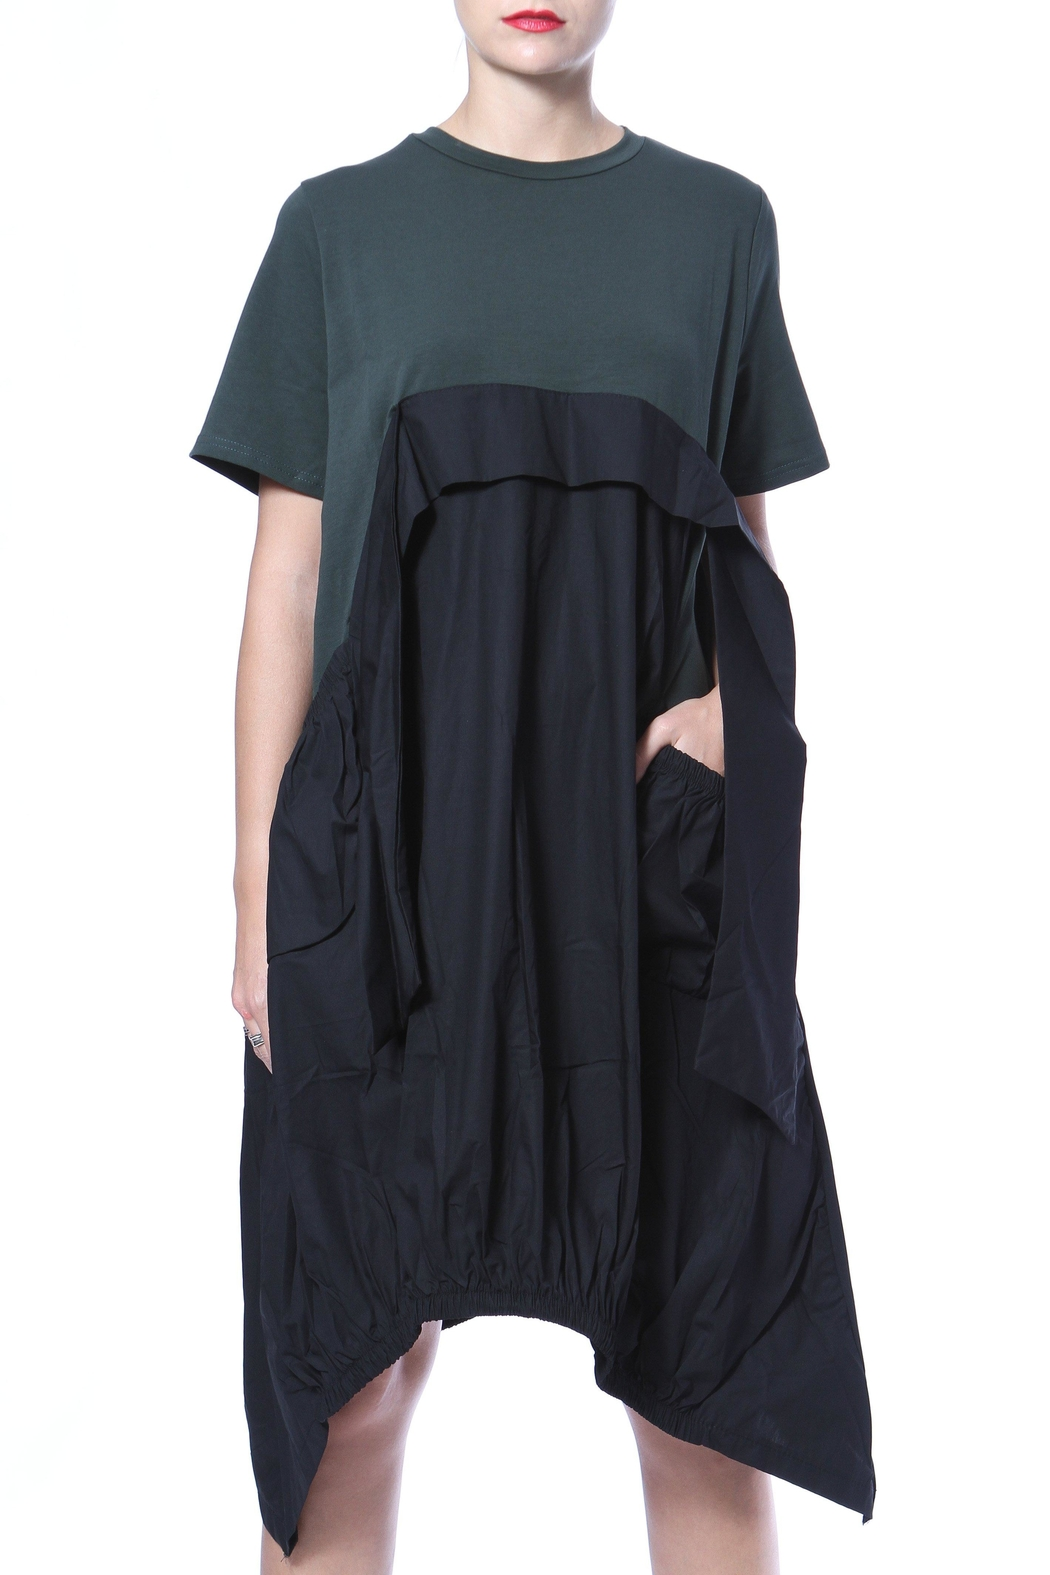 Madonna & Co Hi-Lo Chic Dress - Front Cropped Image